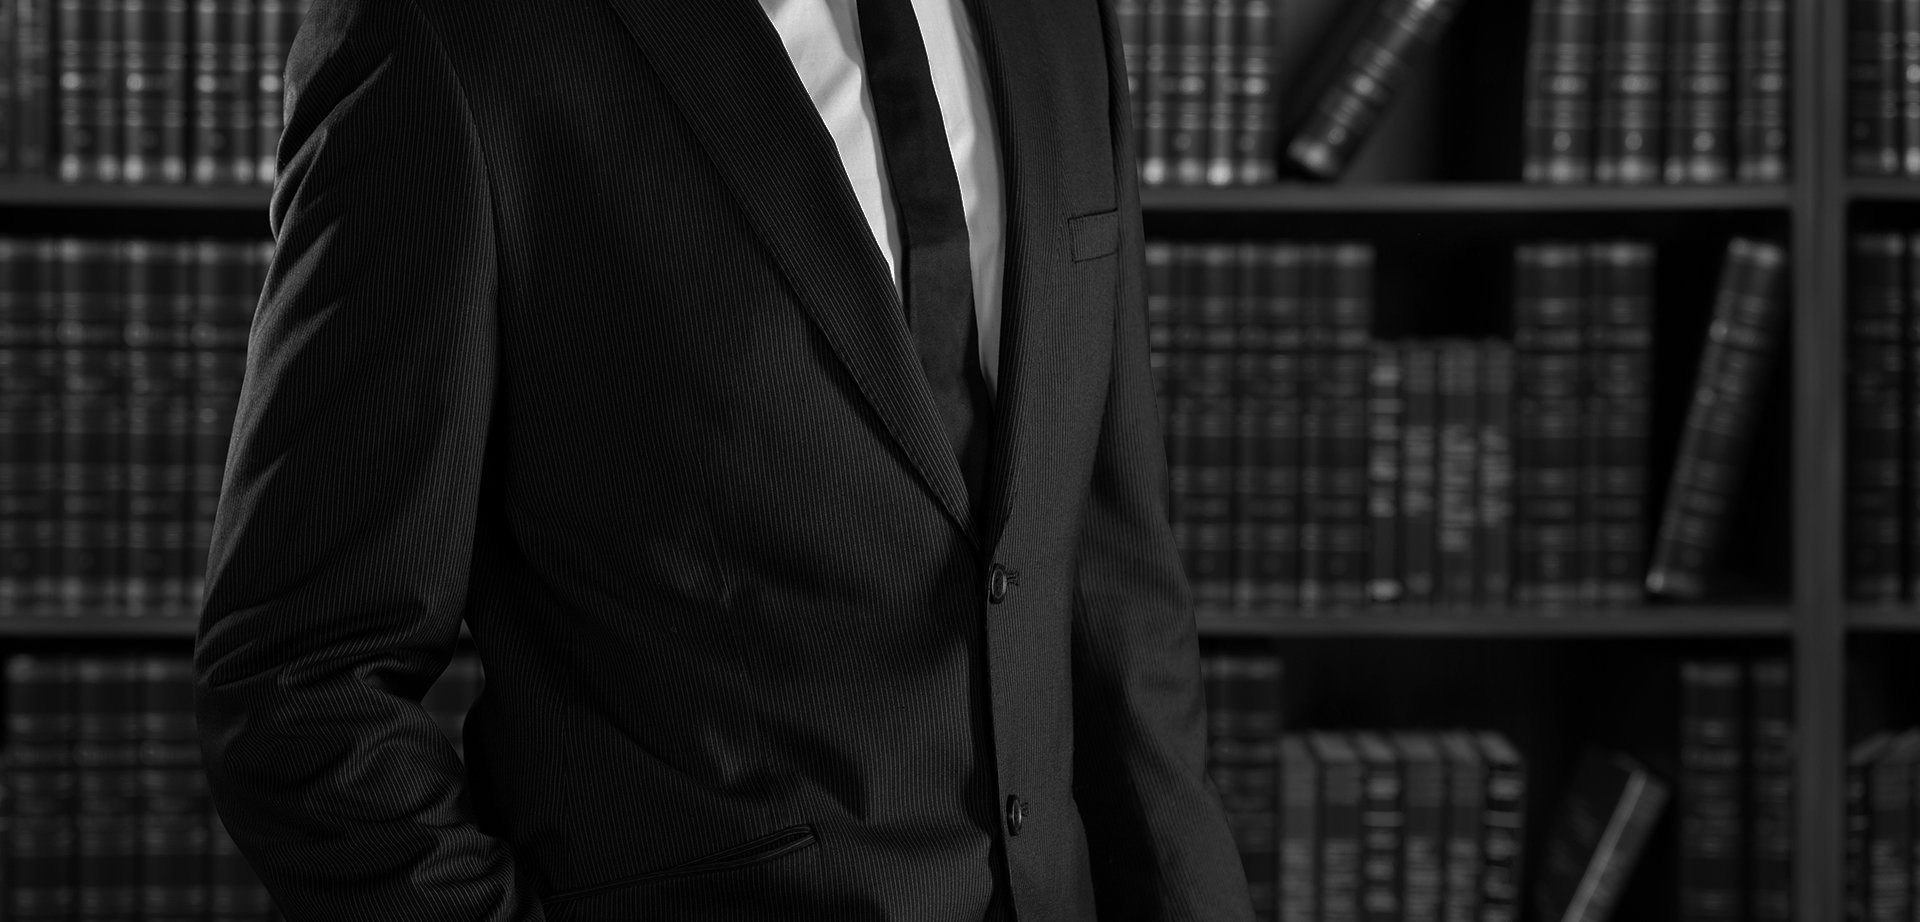 David H. Heller Attorney At Law Lawyer Services